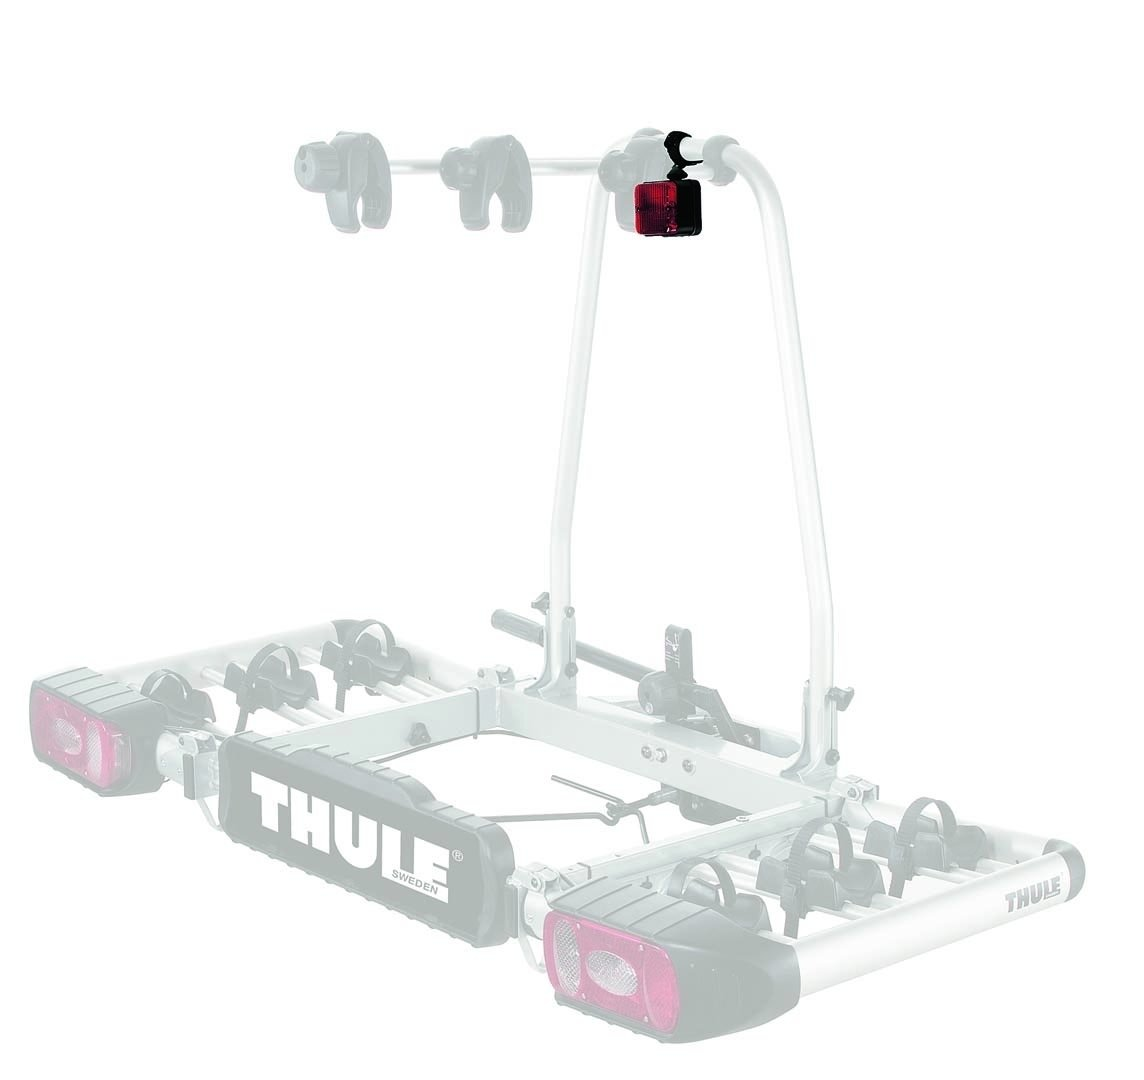 Панель световая Thule 3rd Brake Light 3rd Brake Light 3 TH 9904